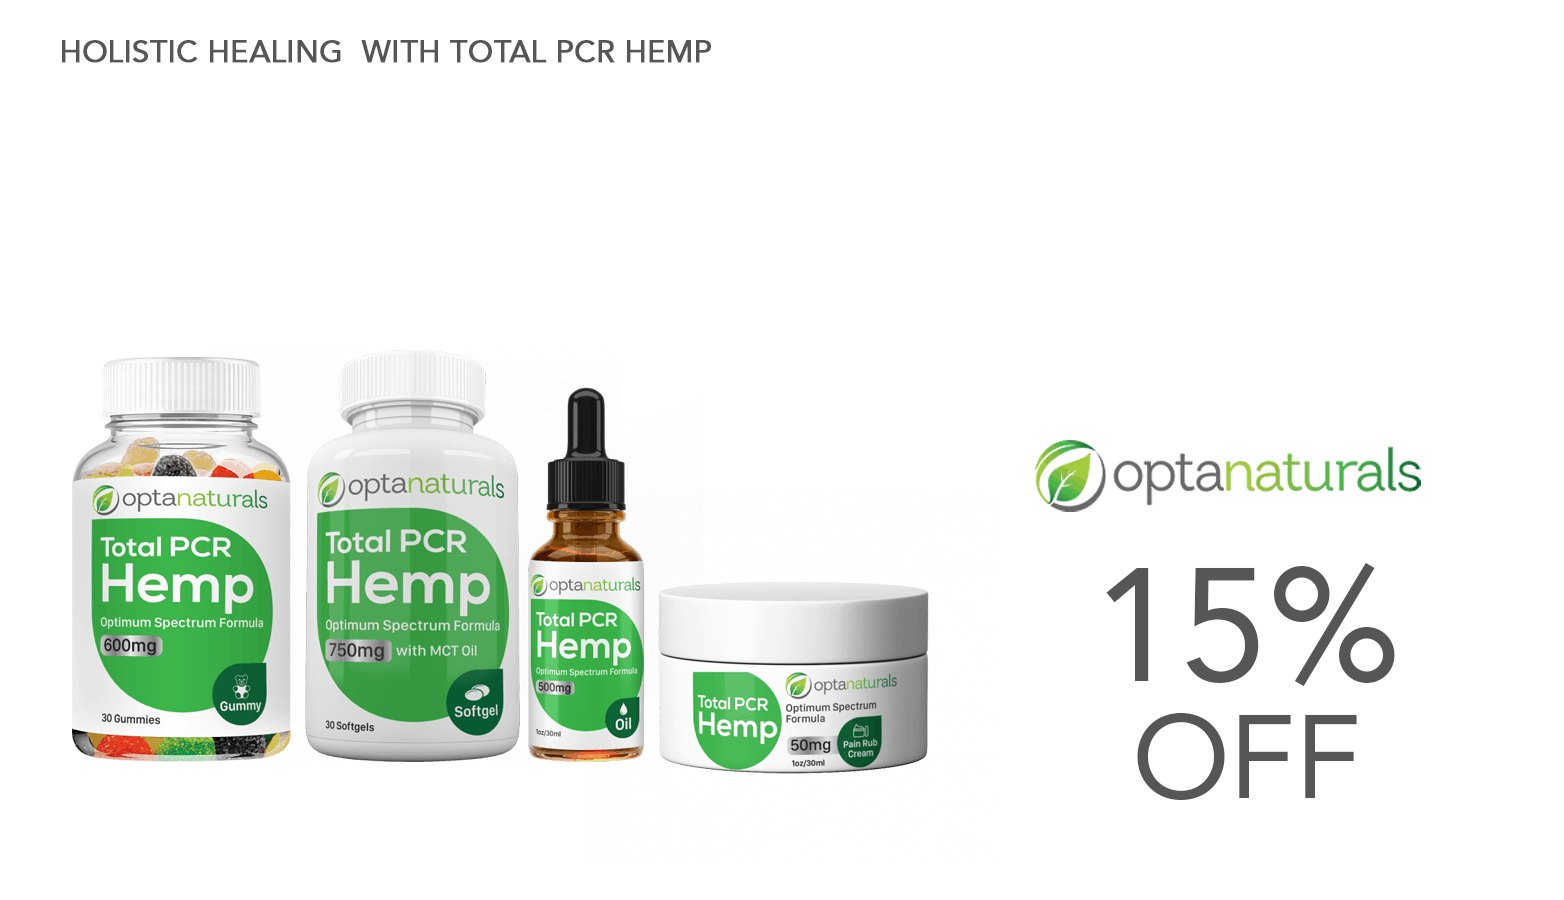 OptraNaturals CBD Coupon Code Website